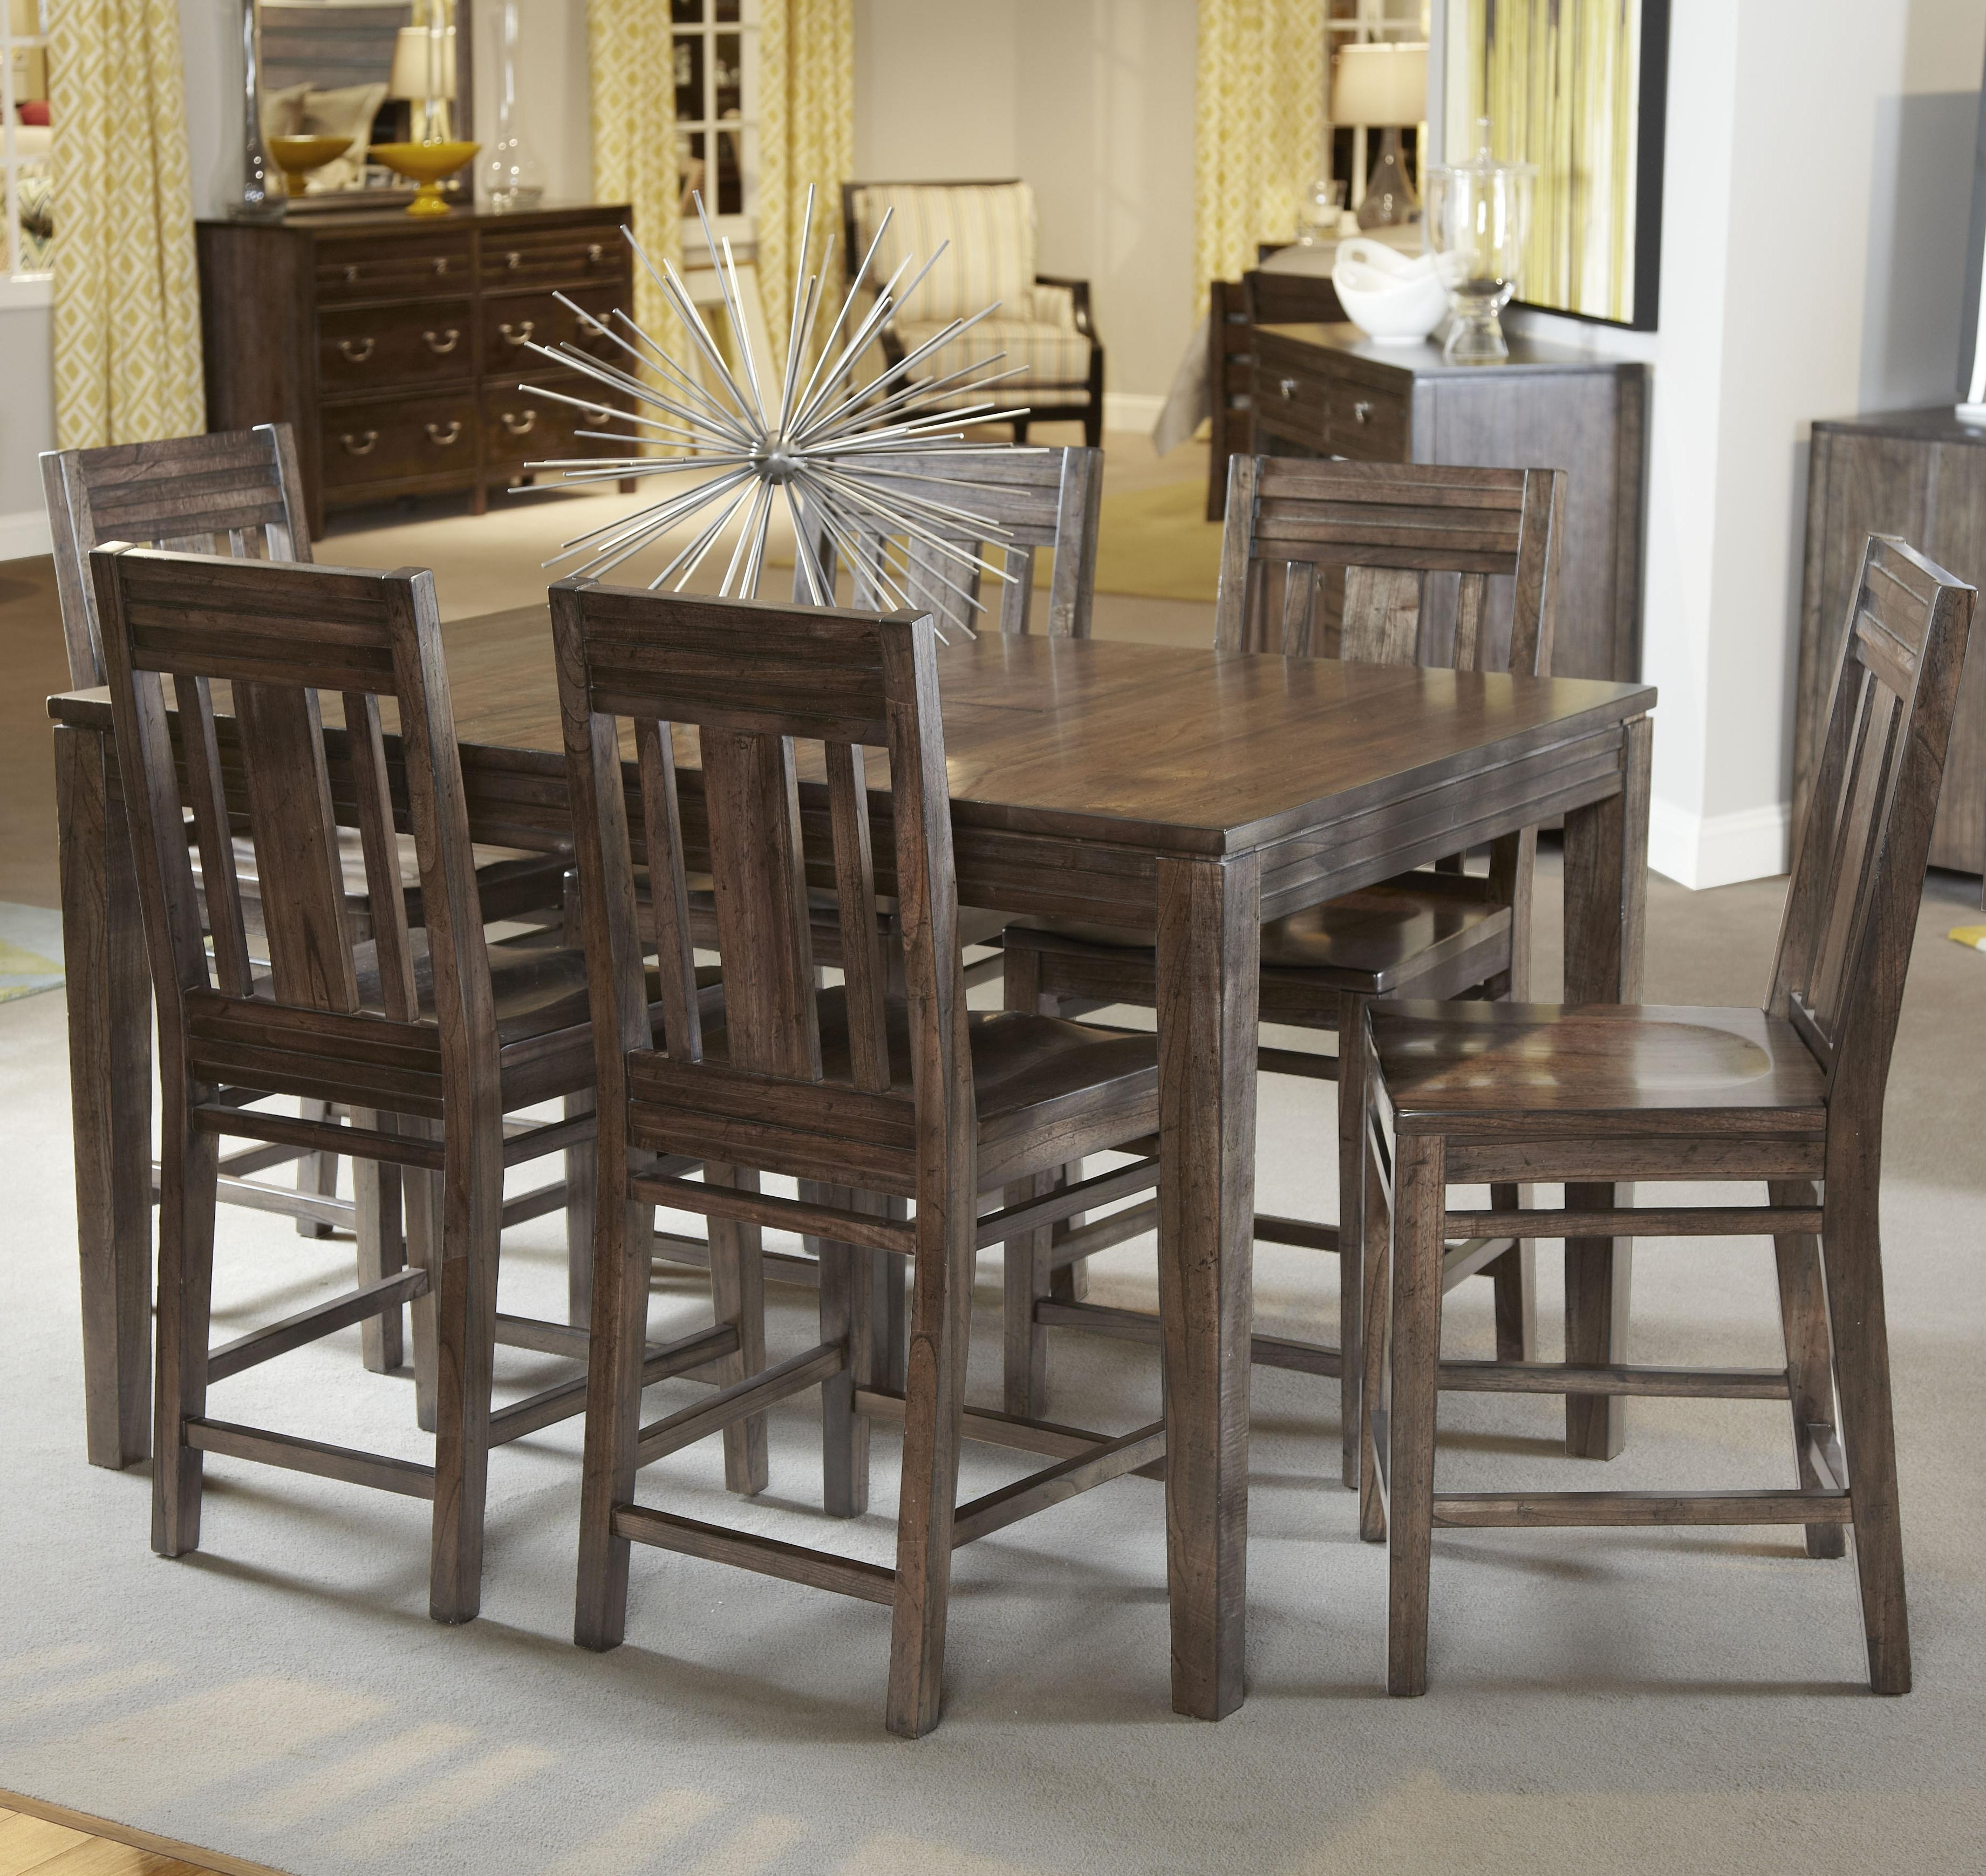 Kincaid Furniture Montreat Seven Piece Casual Counter Height Dining With Regard To Recent Craftsman 7 Piece Rectangle Extension Dining Sets With Side Chairs (Image 15 of 20)